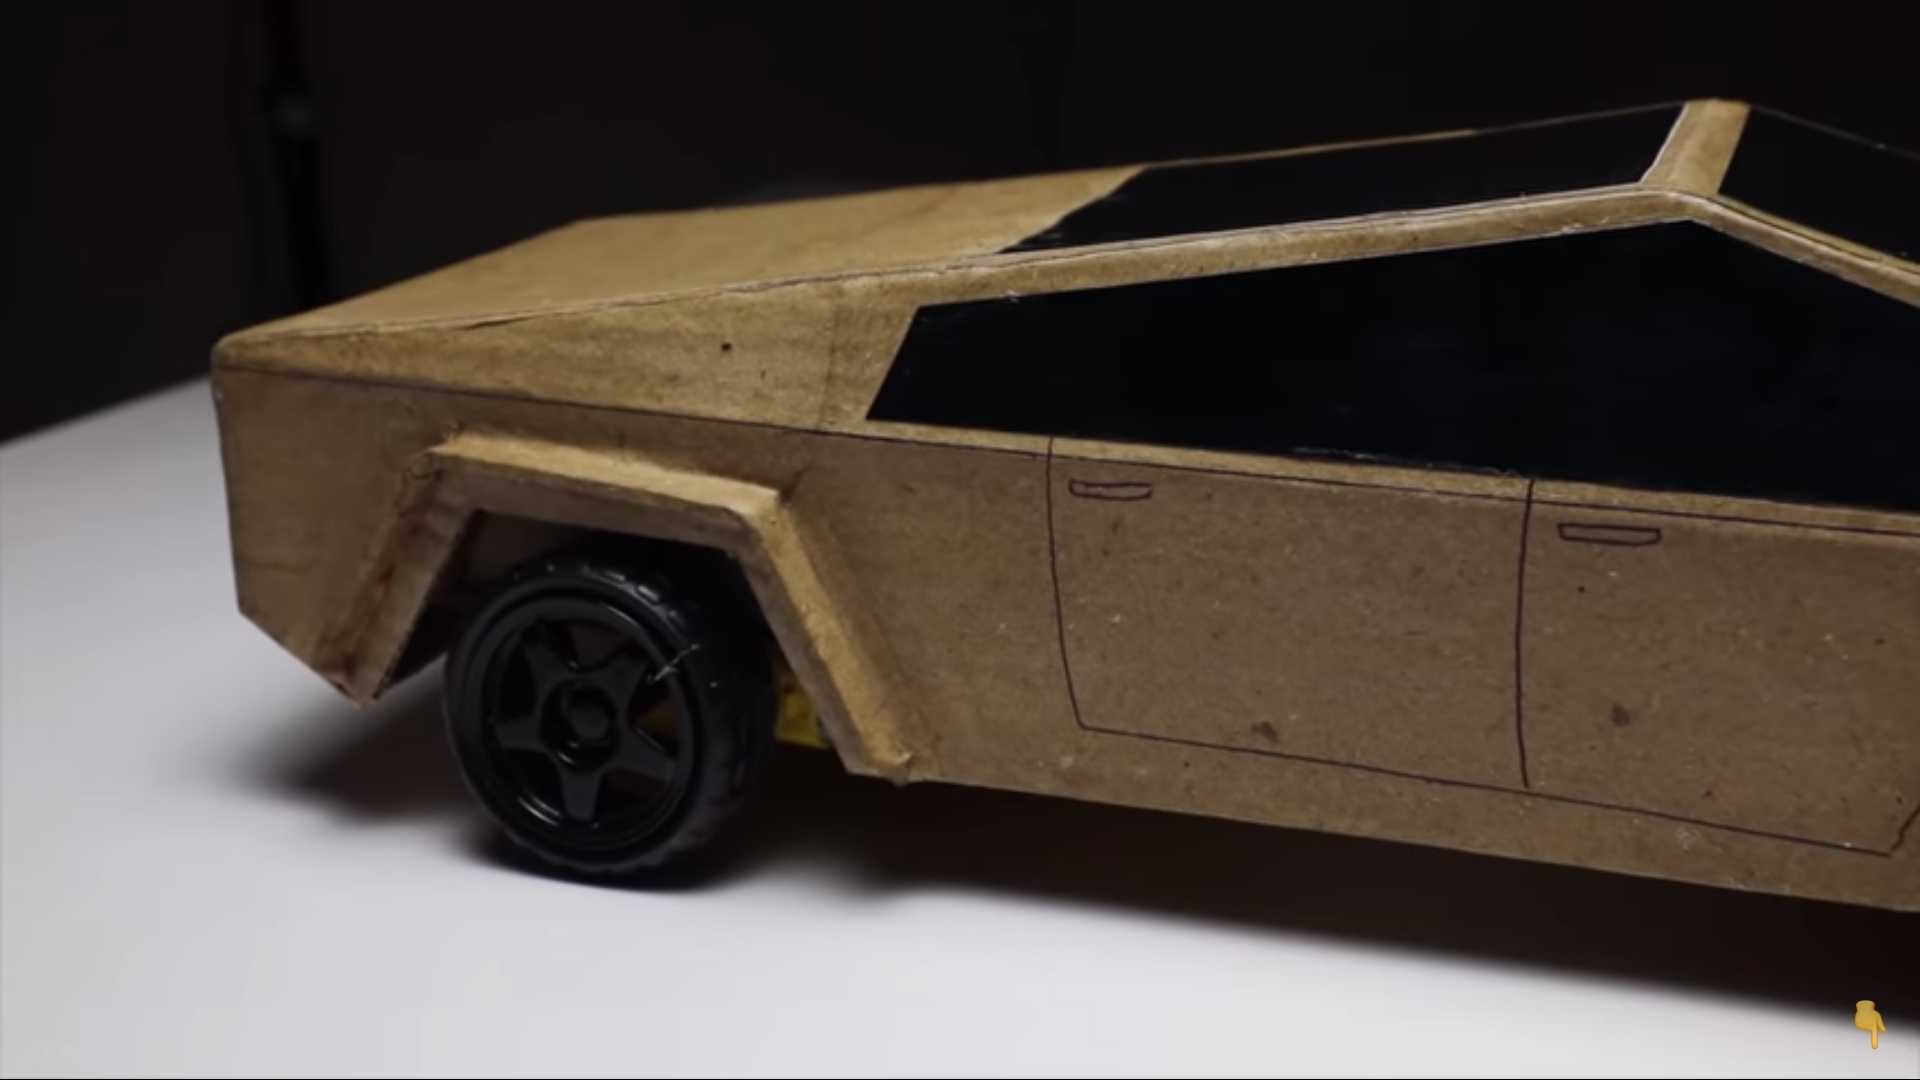 Grab Some Cardboard And Make Your Own Tesla Cybertruck ...